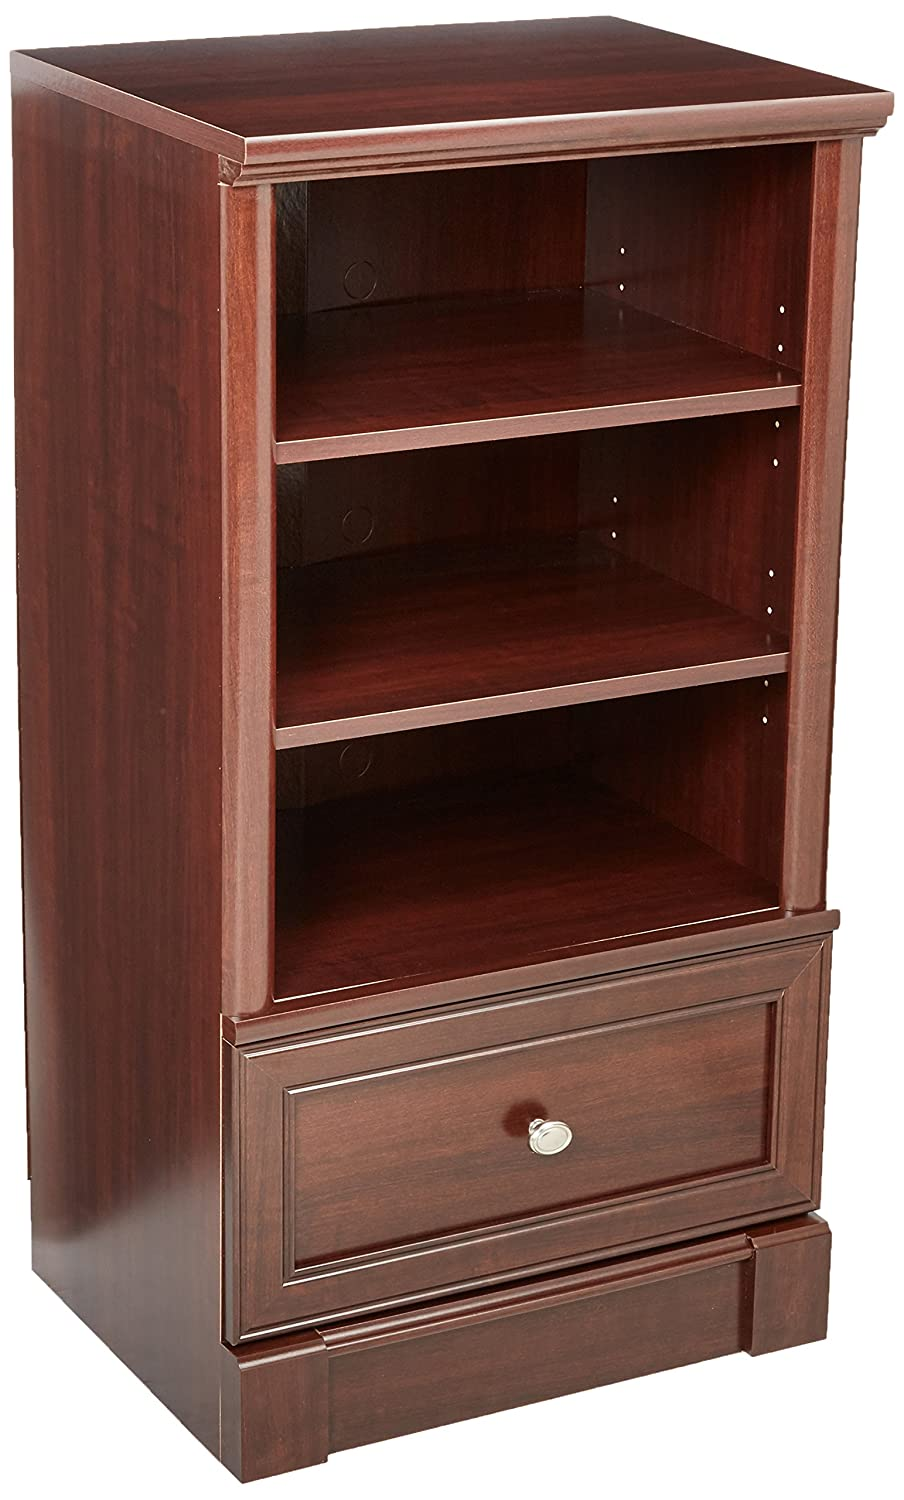 Sauder Palladia Technology Pier Free Standing Cabinet, Select Cherry Finish 411861